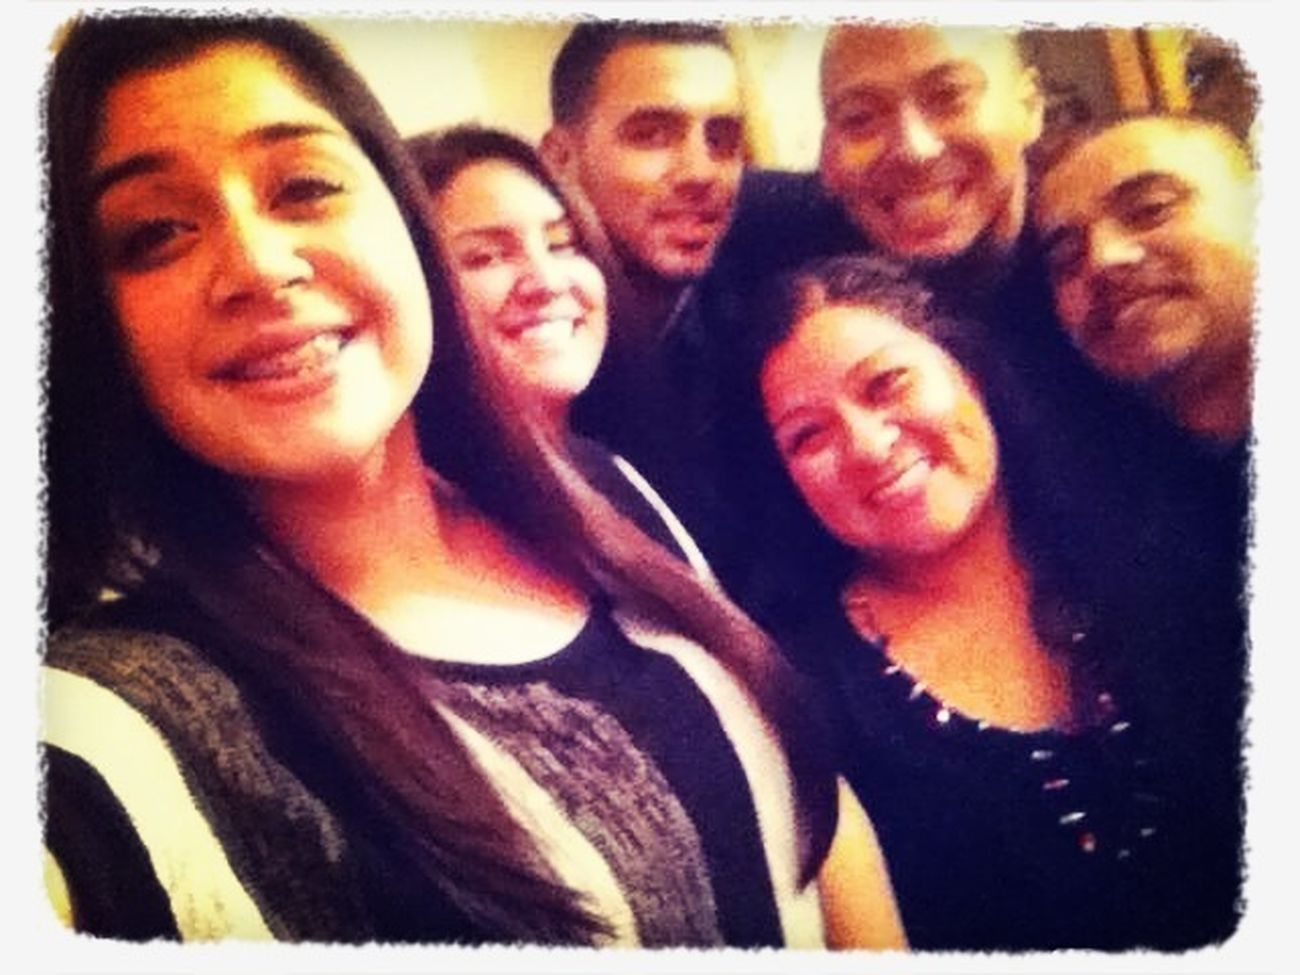 We Cute Tho❤❤❤ We All Look Alike!